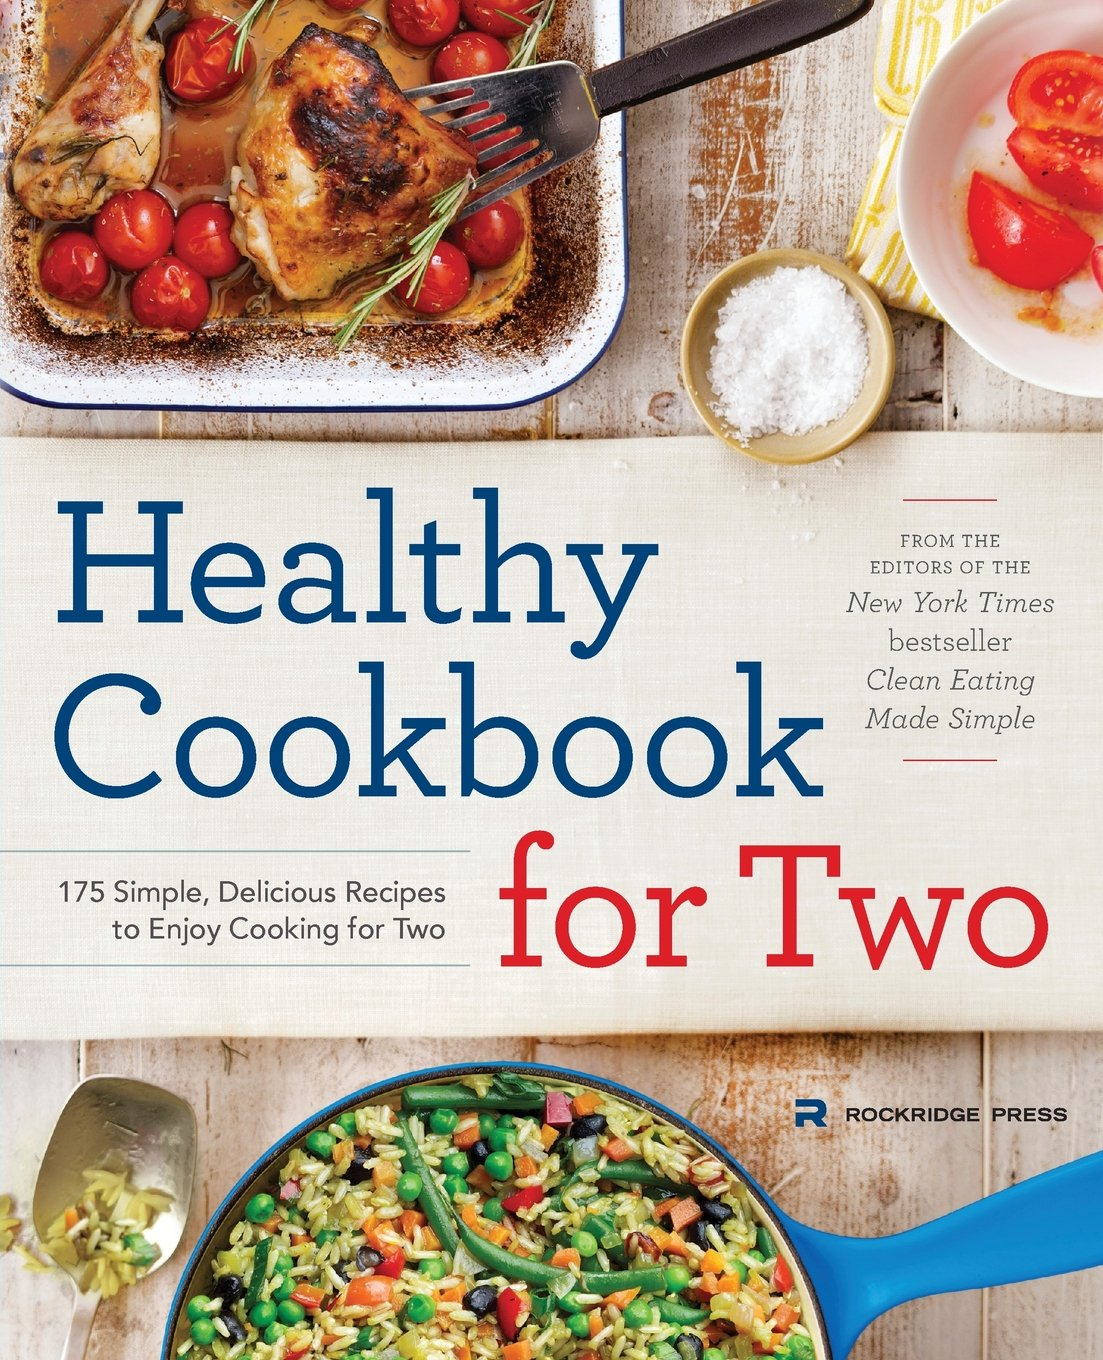 175 Simple, Delicious Recipes to Enjoy Cooking for Two